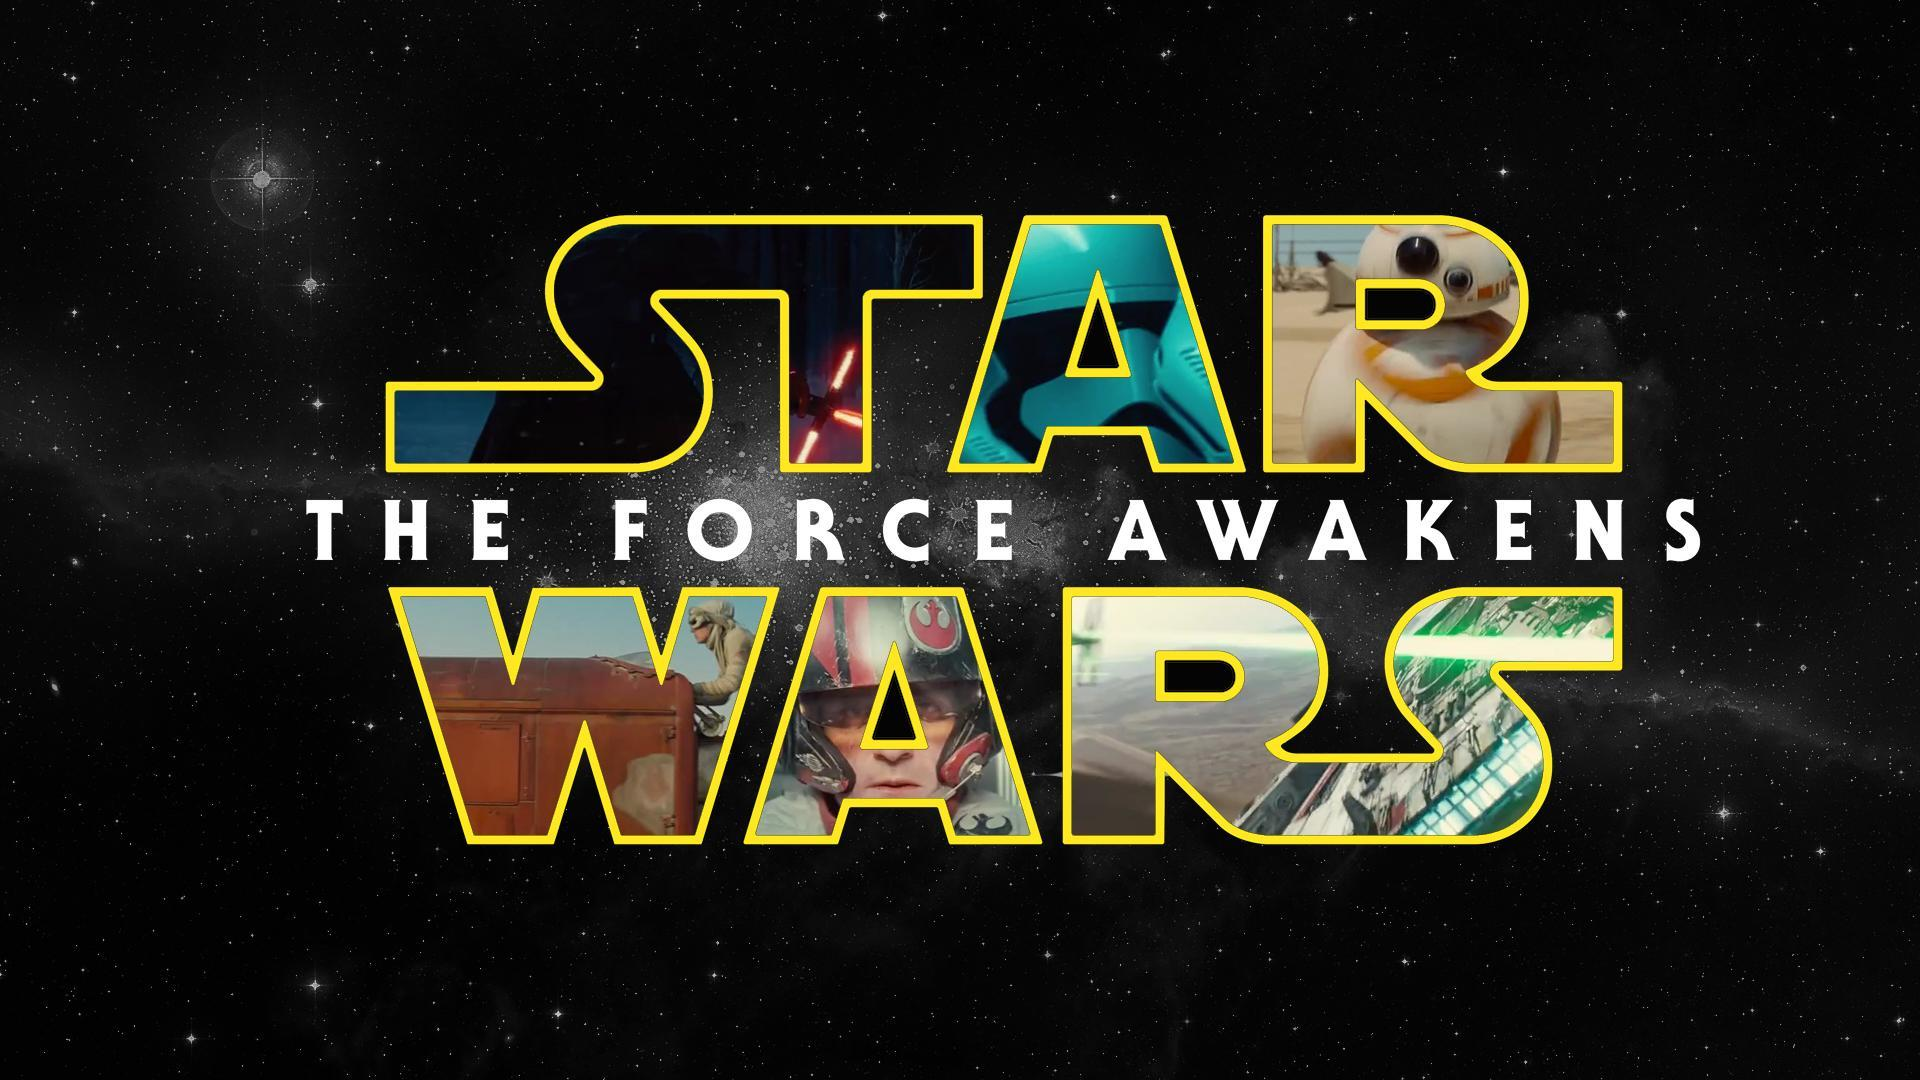 Image - Star Wars: The Force Awakens Poised To Shatter Every Box Office Record We Have states an article on http://ww...